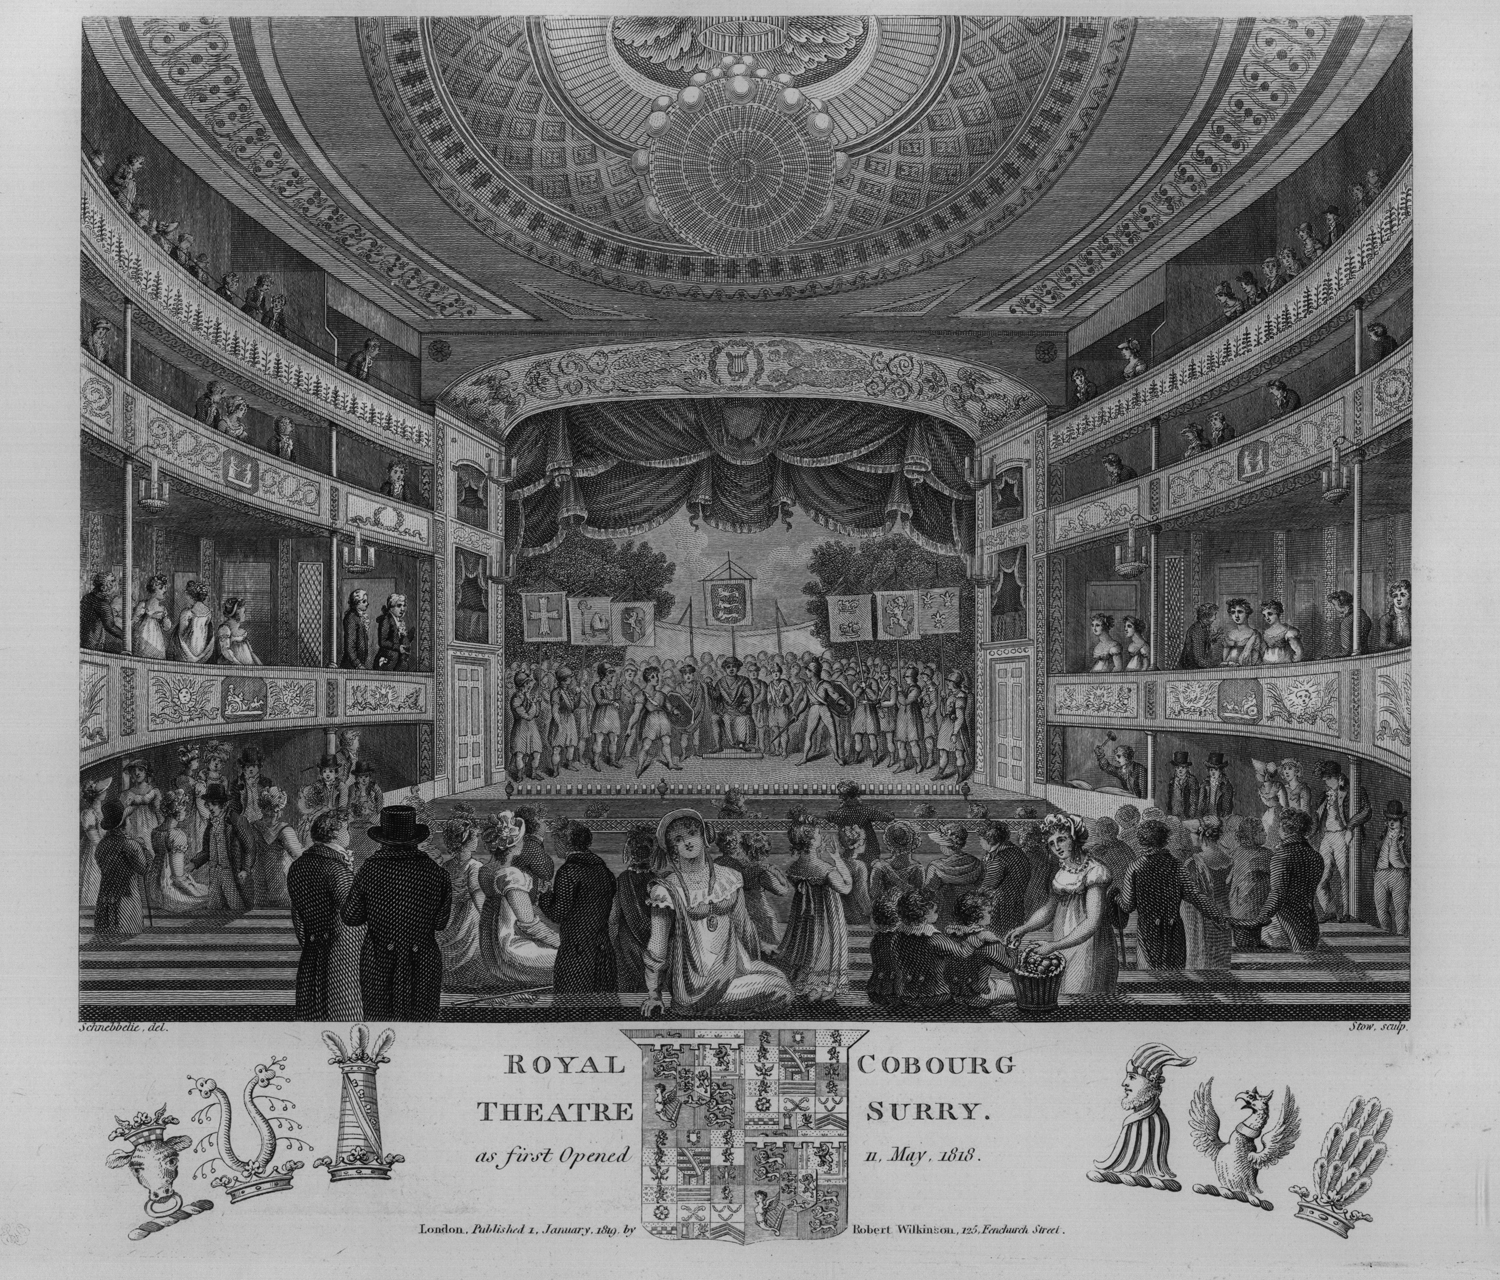 The Old Vic, young Mary Ashford and a brutal killer: the opening night of the Royal Coburg Theatre, 11 May 1818